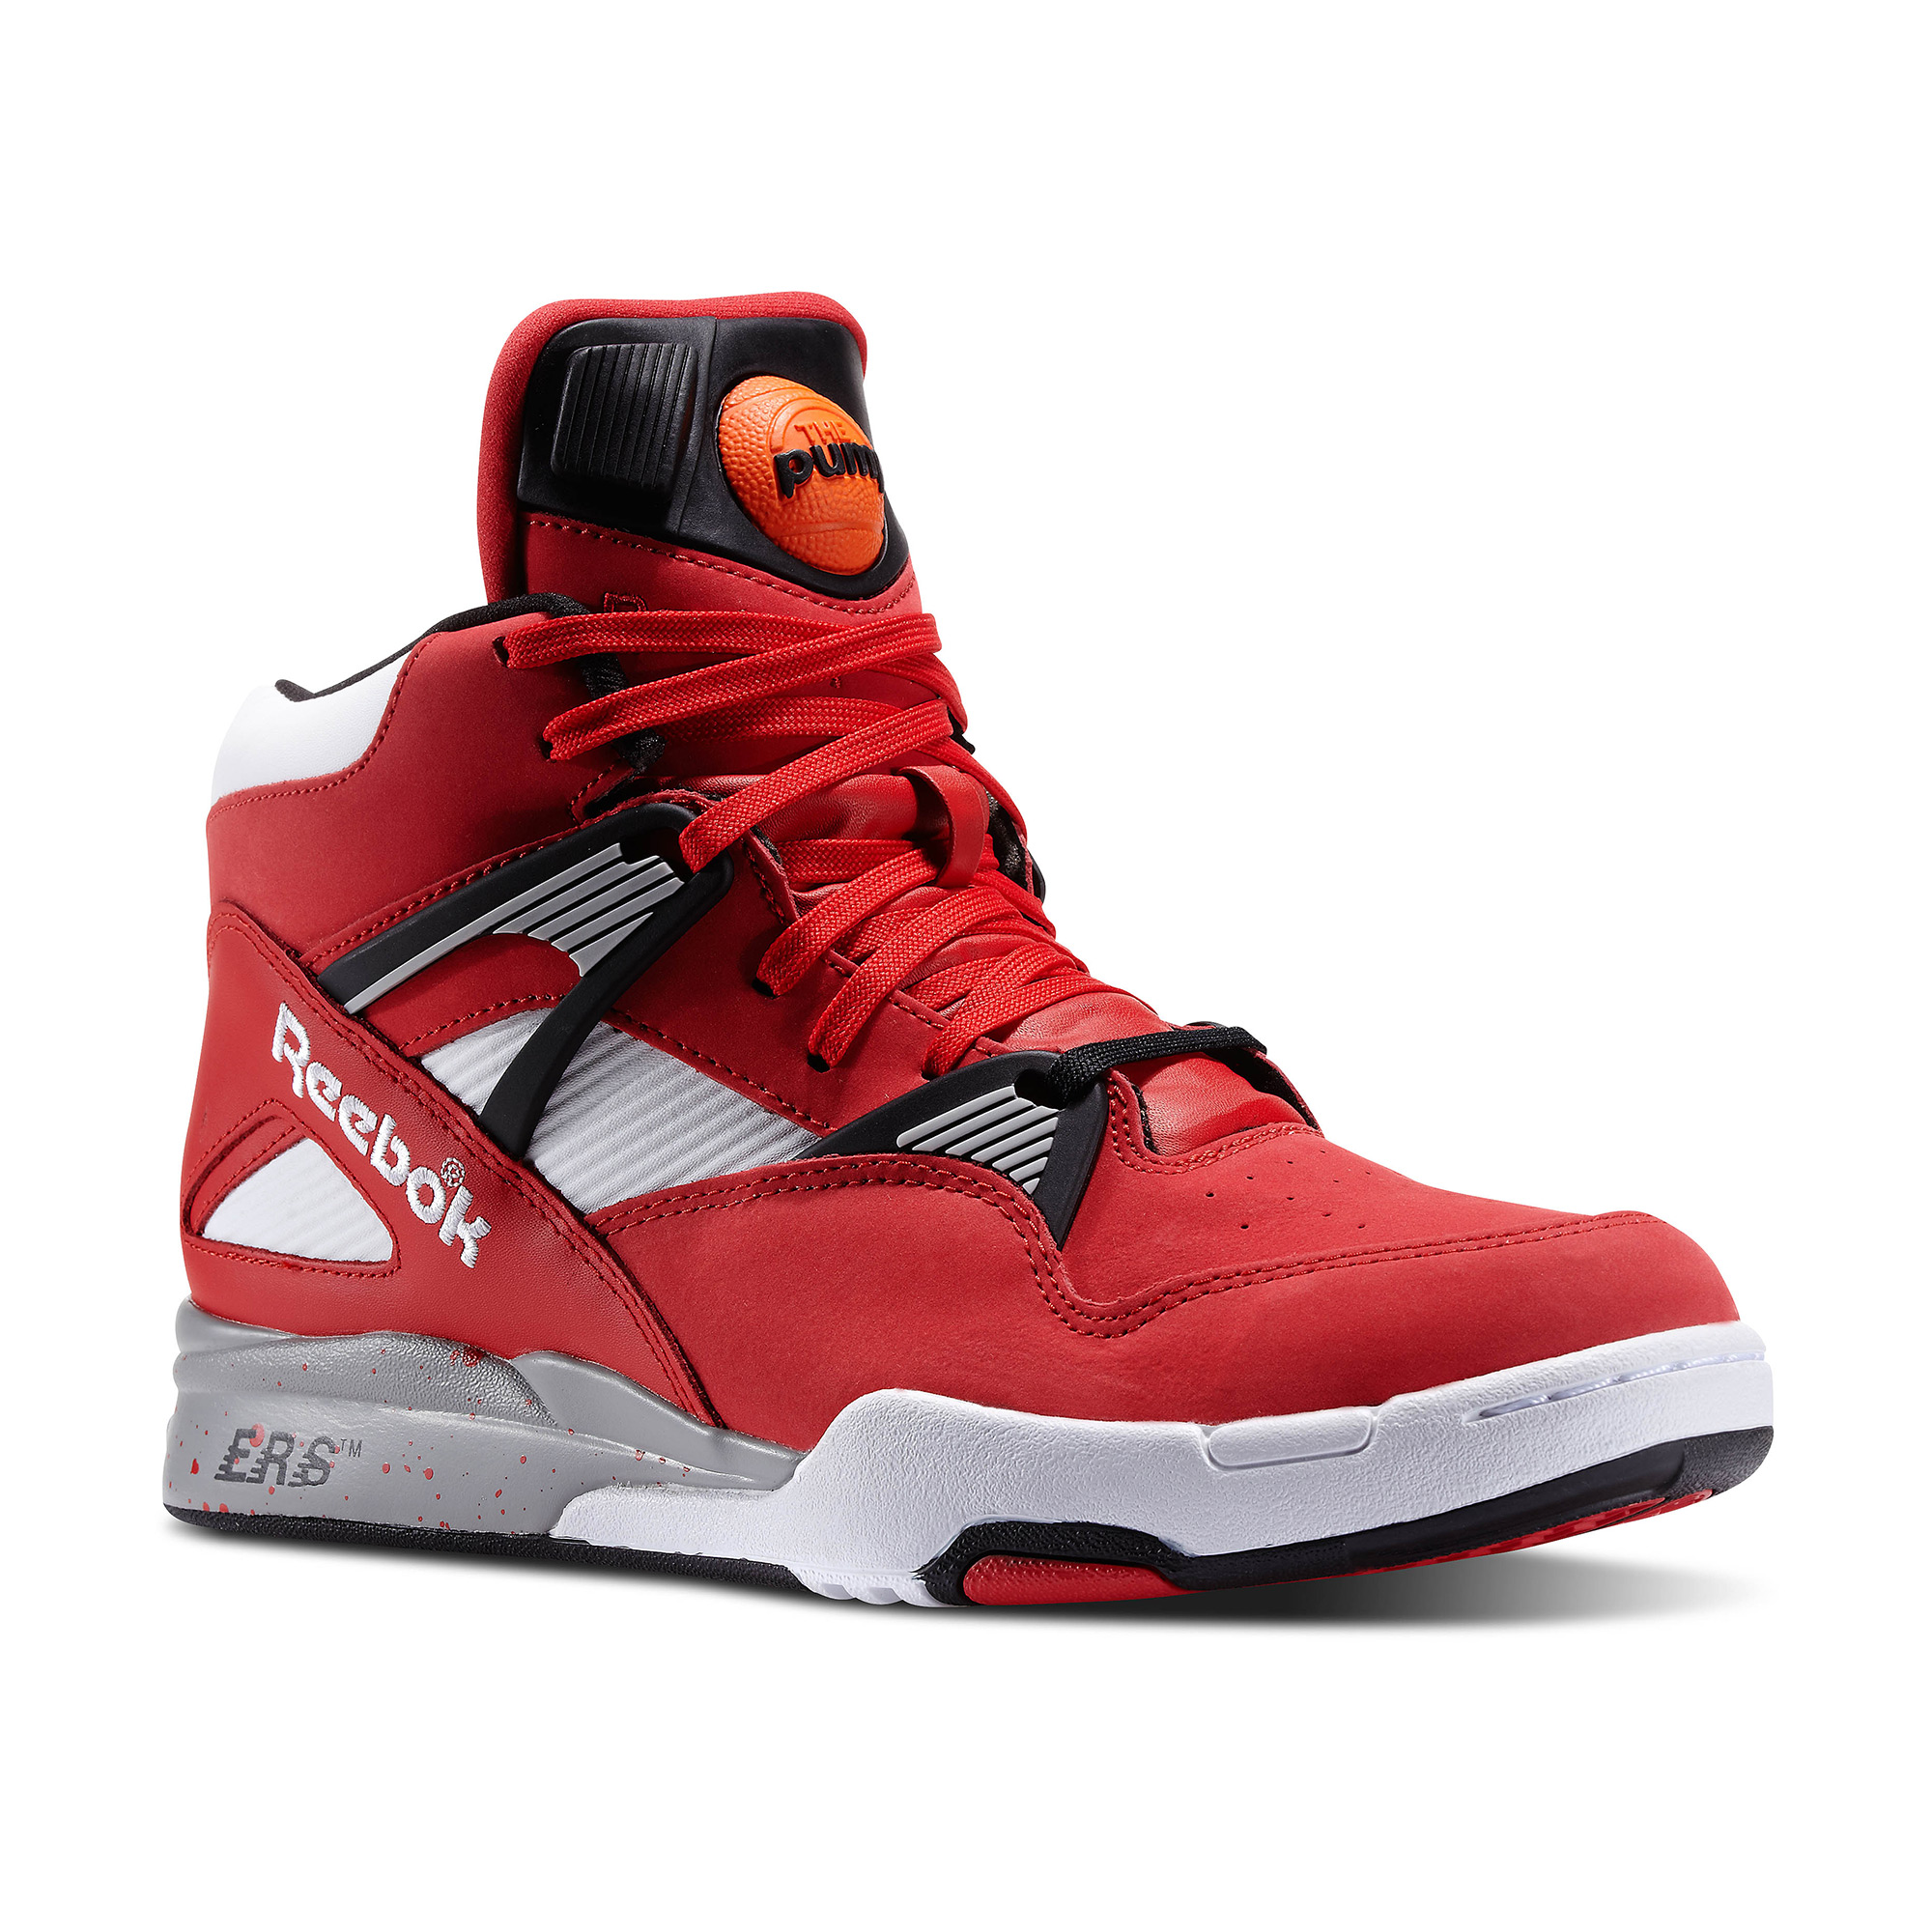 Reebok Pump Omni Zone Pumpmylife 07